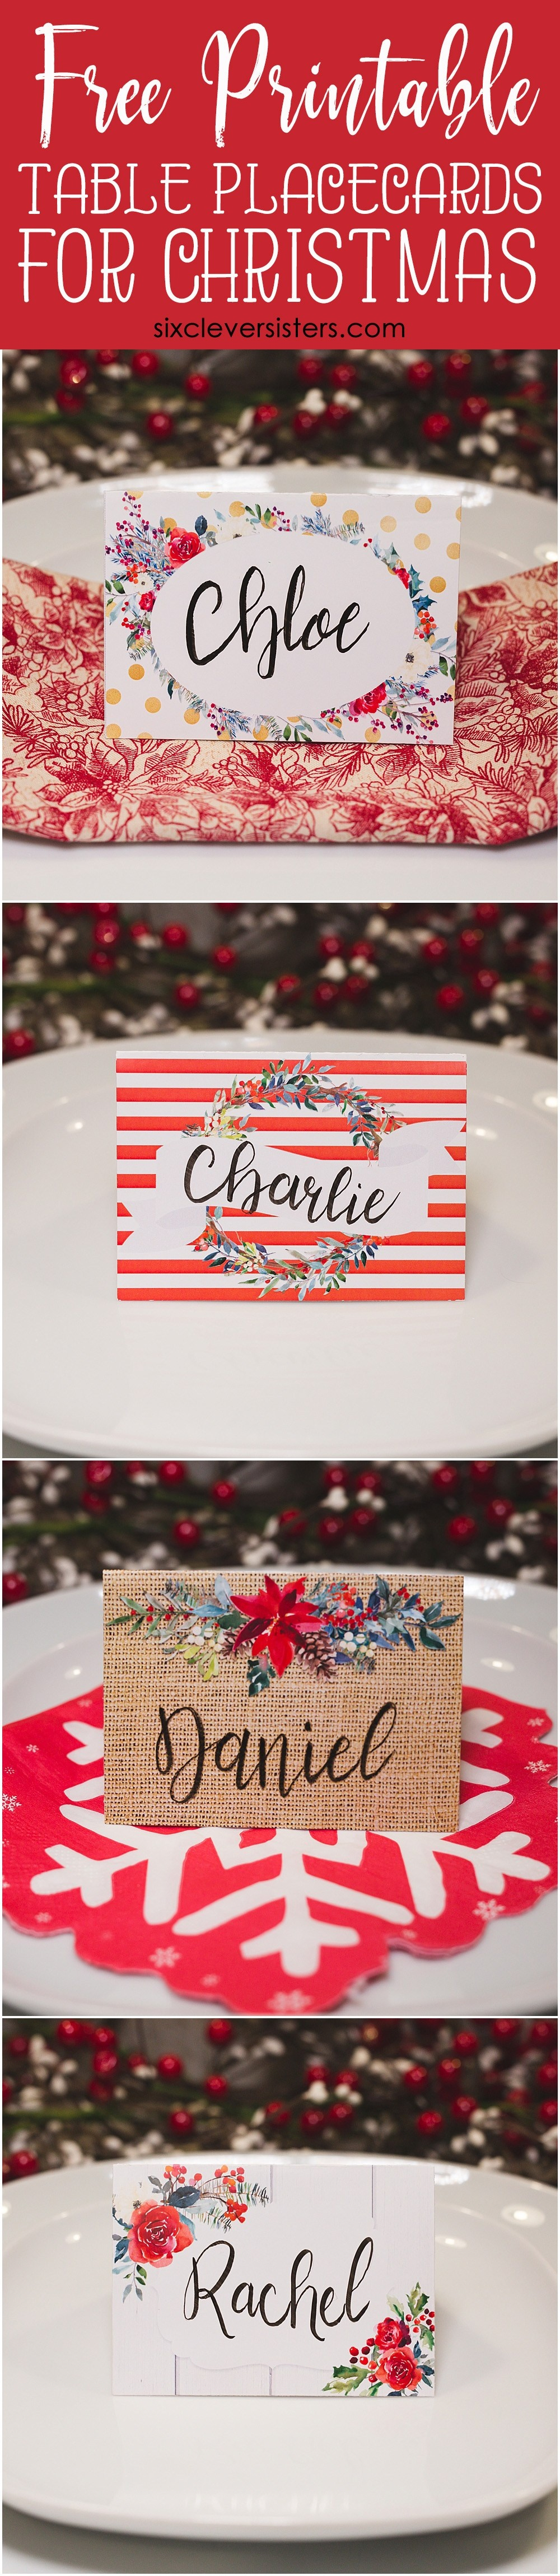 Christmas Table Place Cards { Free Printable} - Six Clever Sisters - Free Printable Christmas Tent Cards